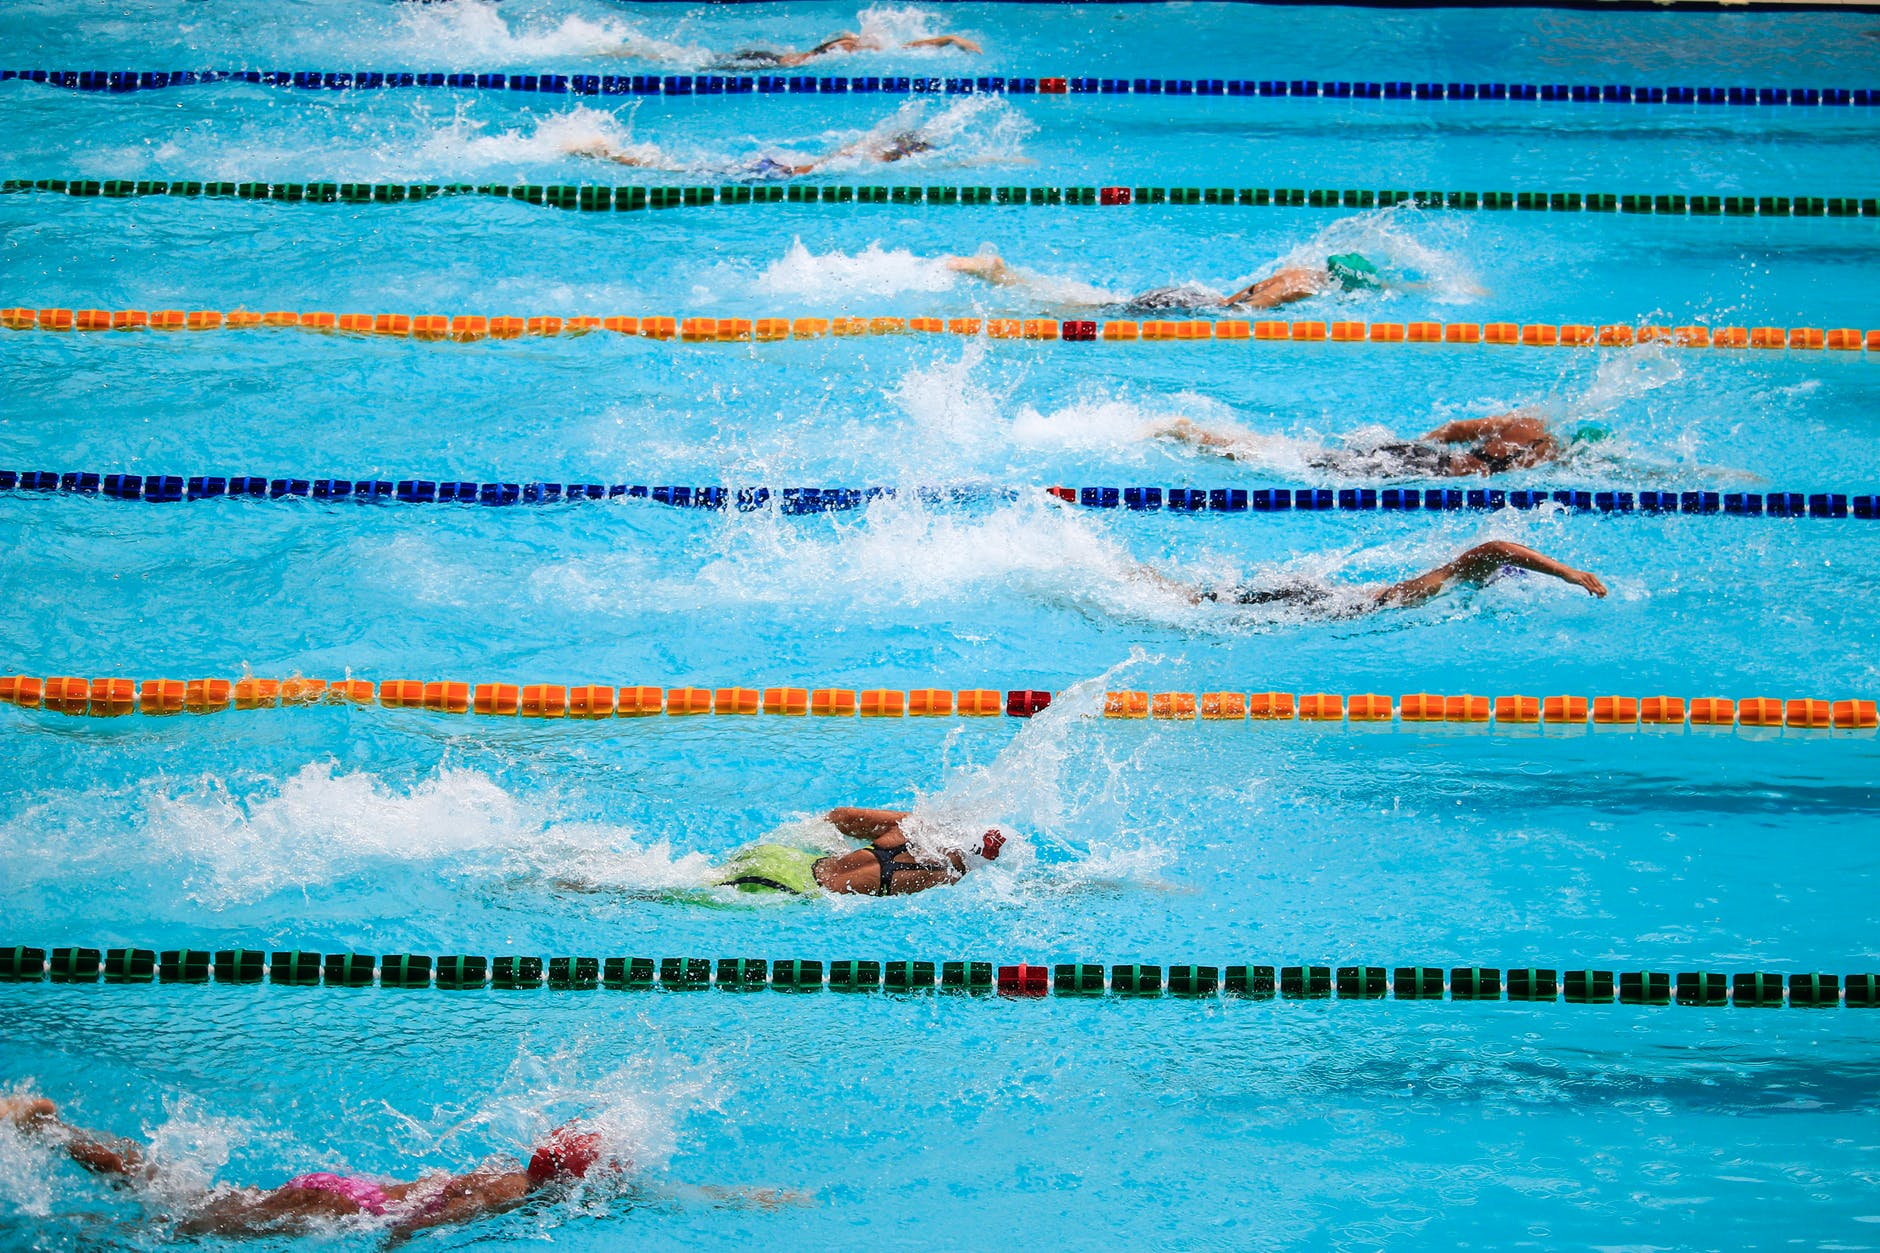 Swimming race